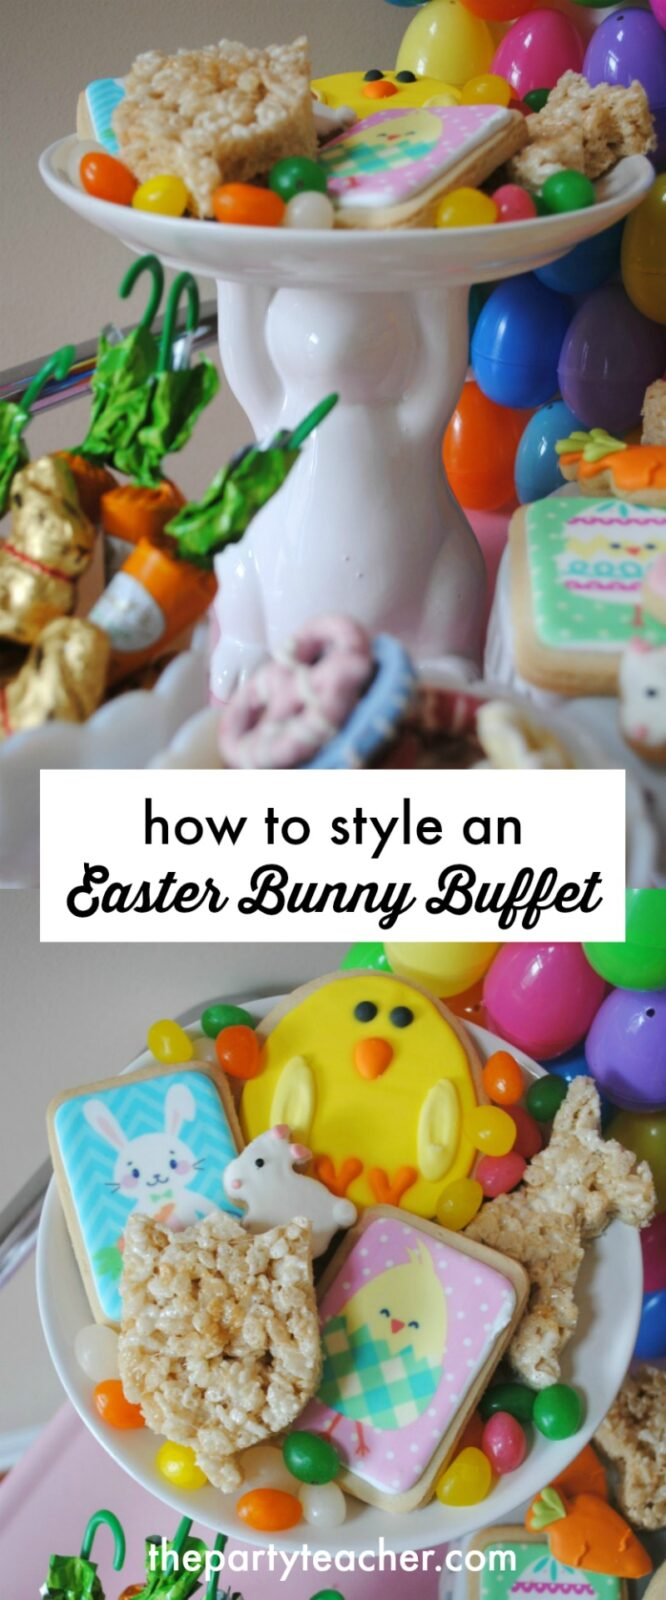 How to style an Easter egg hunt bunny buffet by The Party Teacher